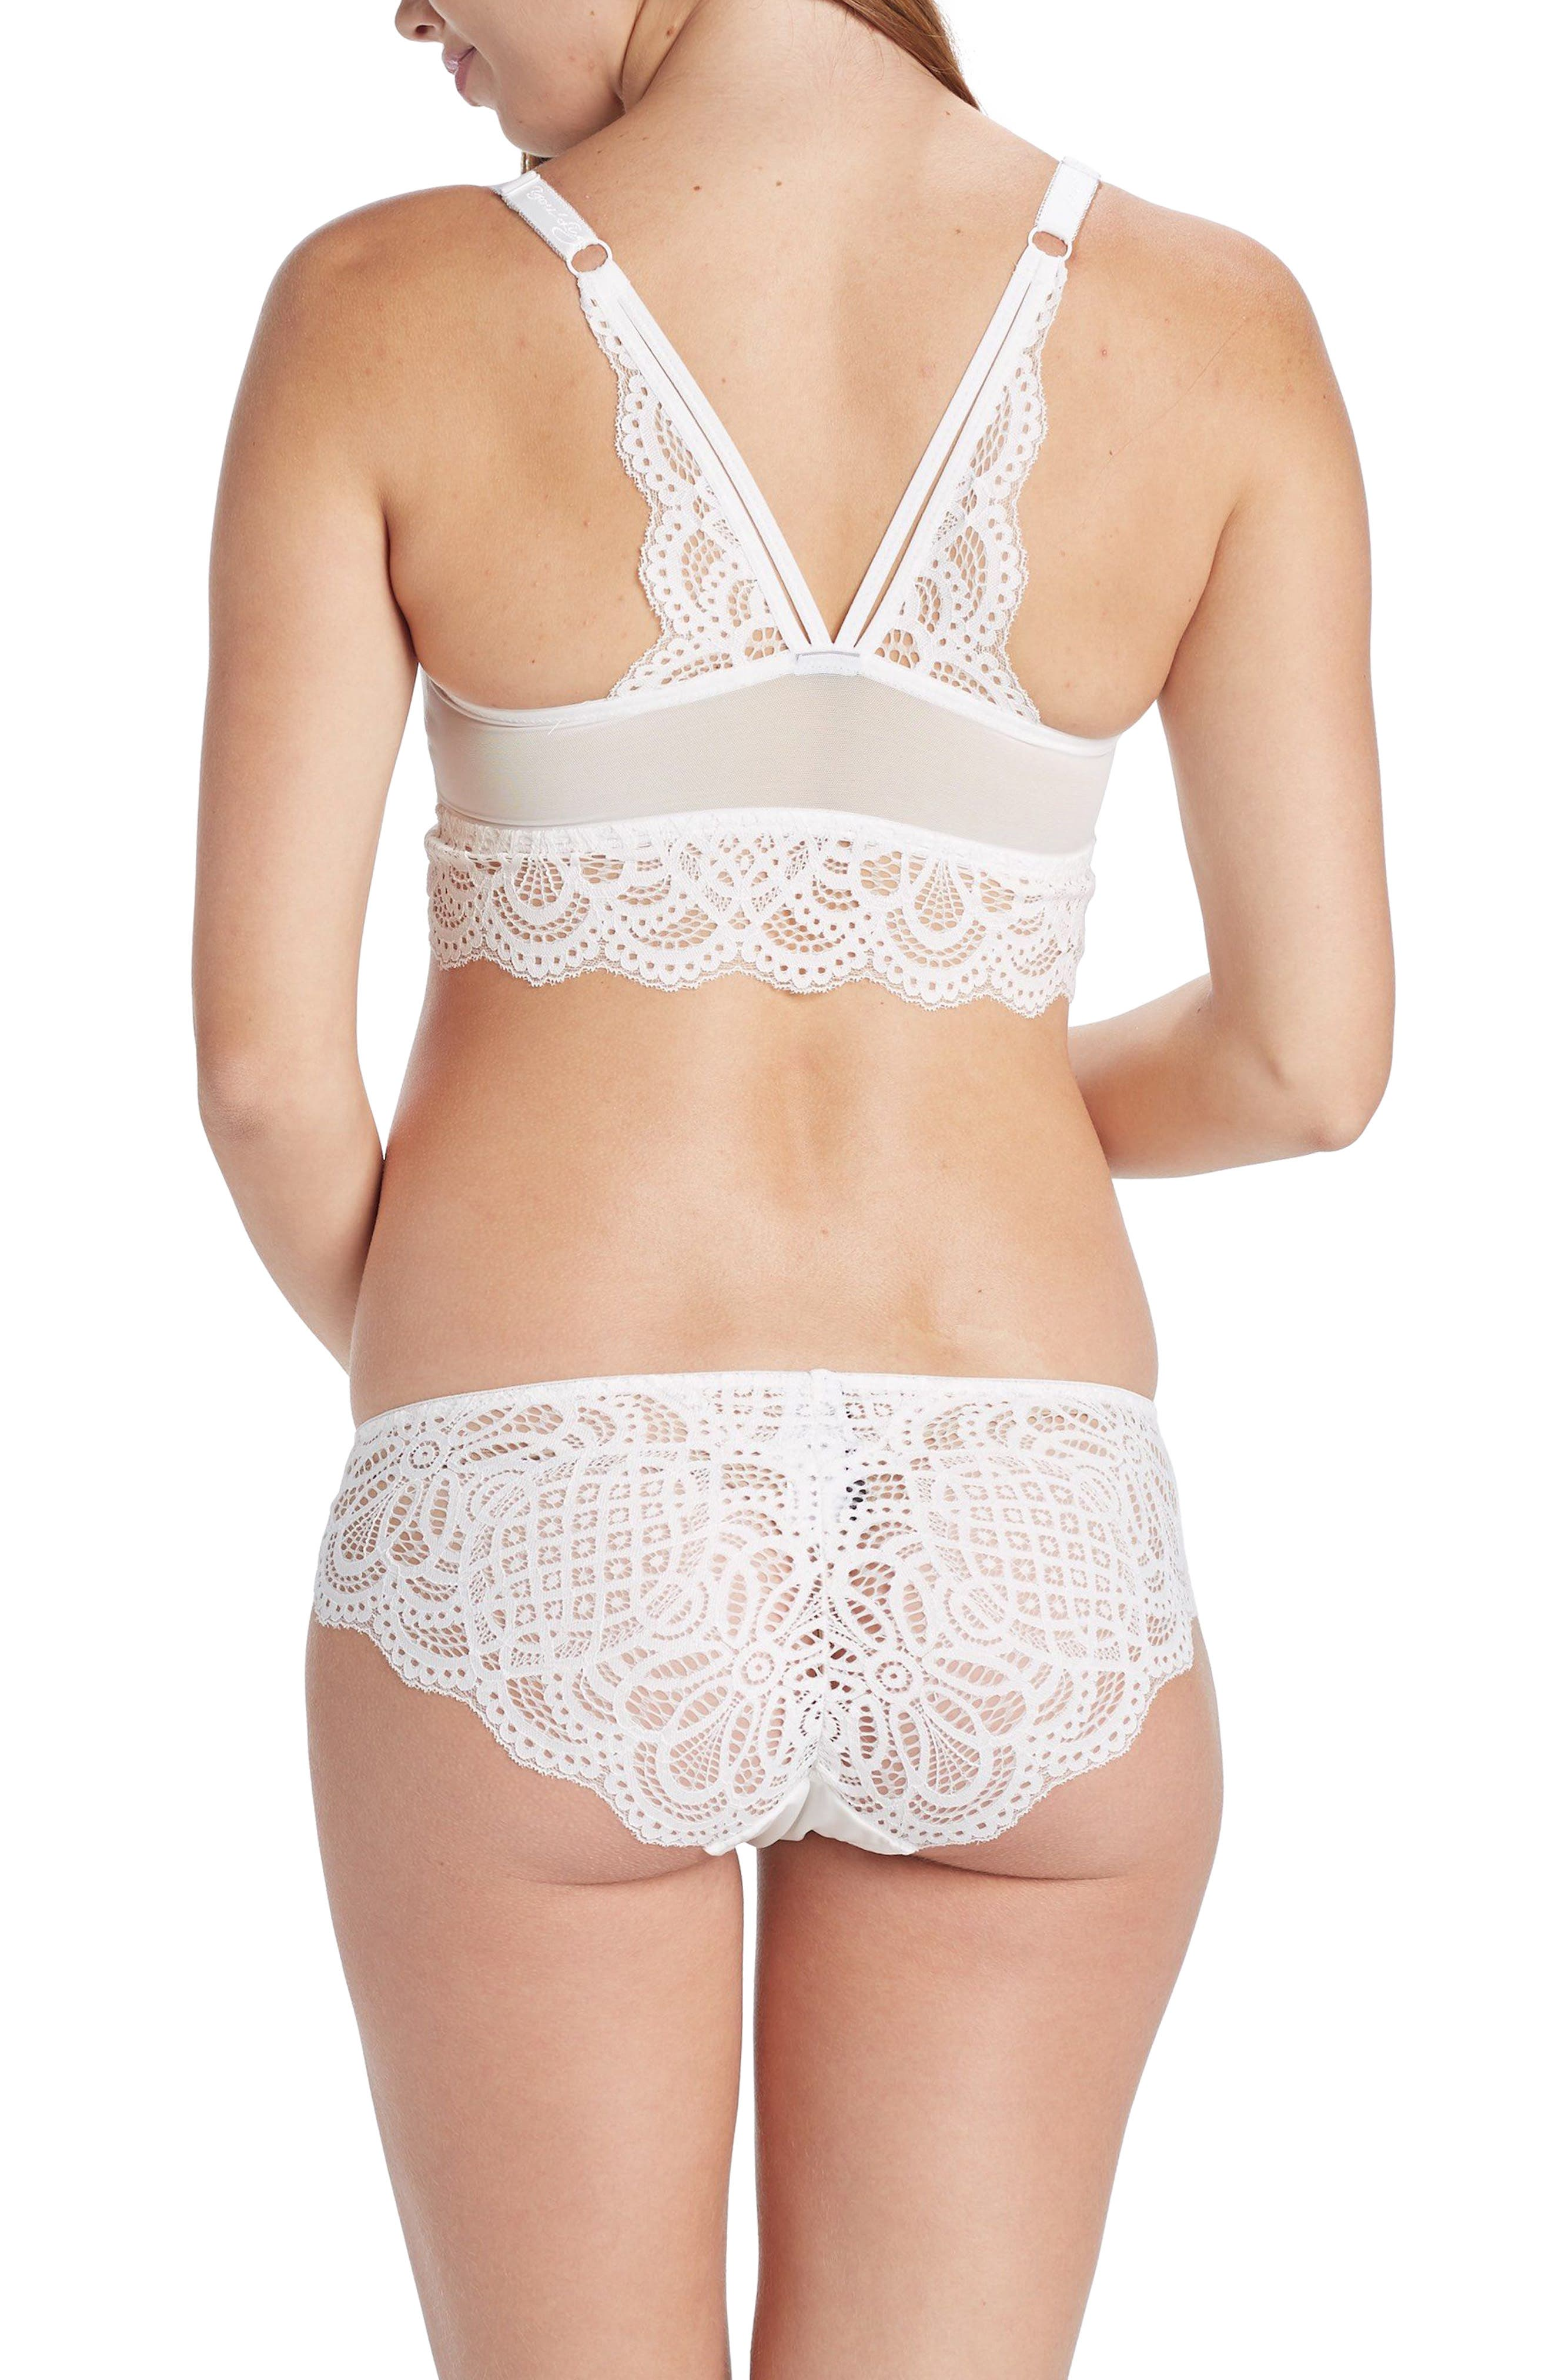 You! Lingerie Naya Lace Maternity Hipster,                             Alternate thumbnail 4, color,                             White